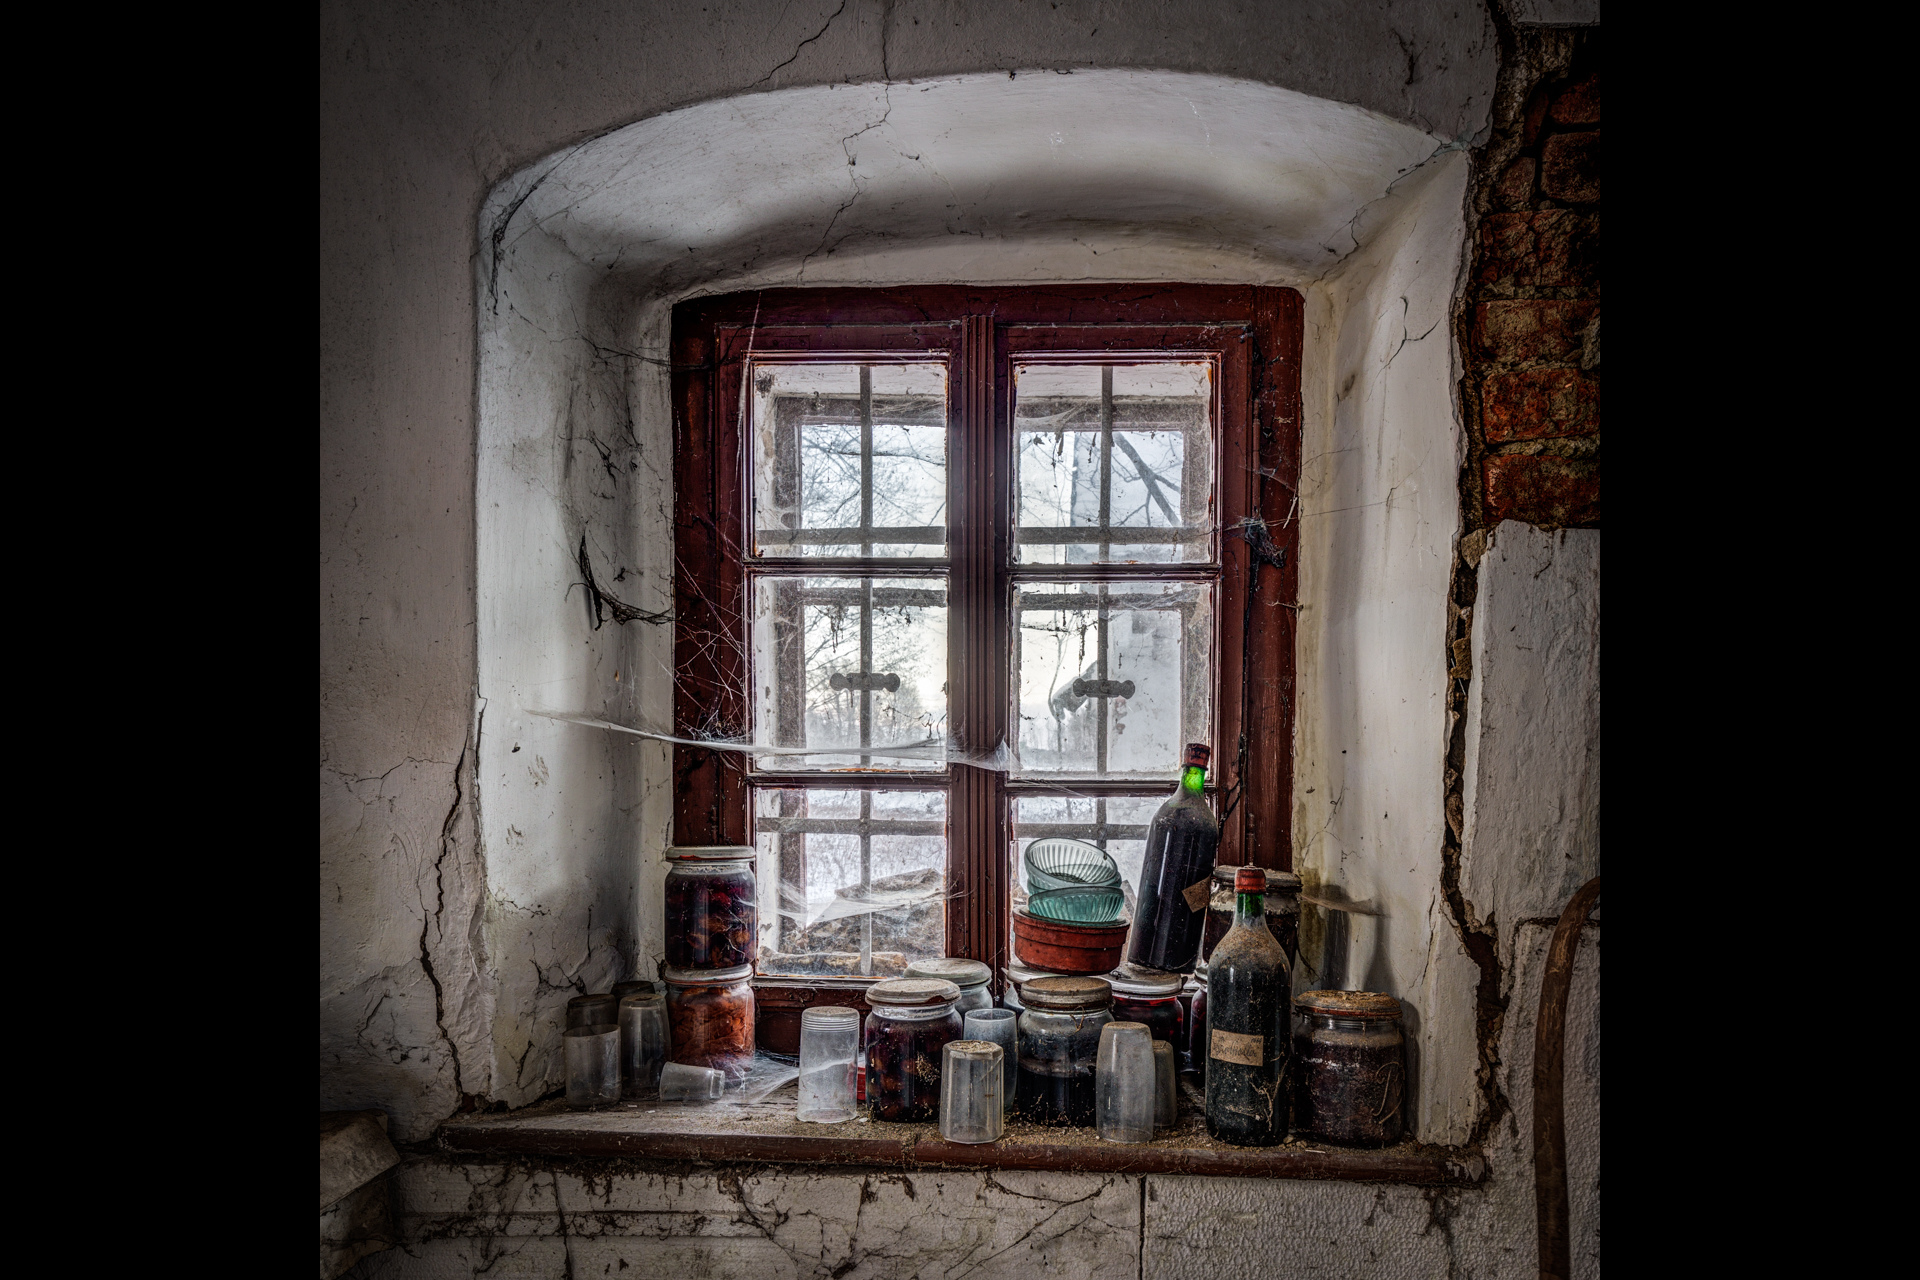 Urban Exploration - Farmhouse Bed and Breakfast - Store Window